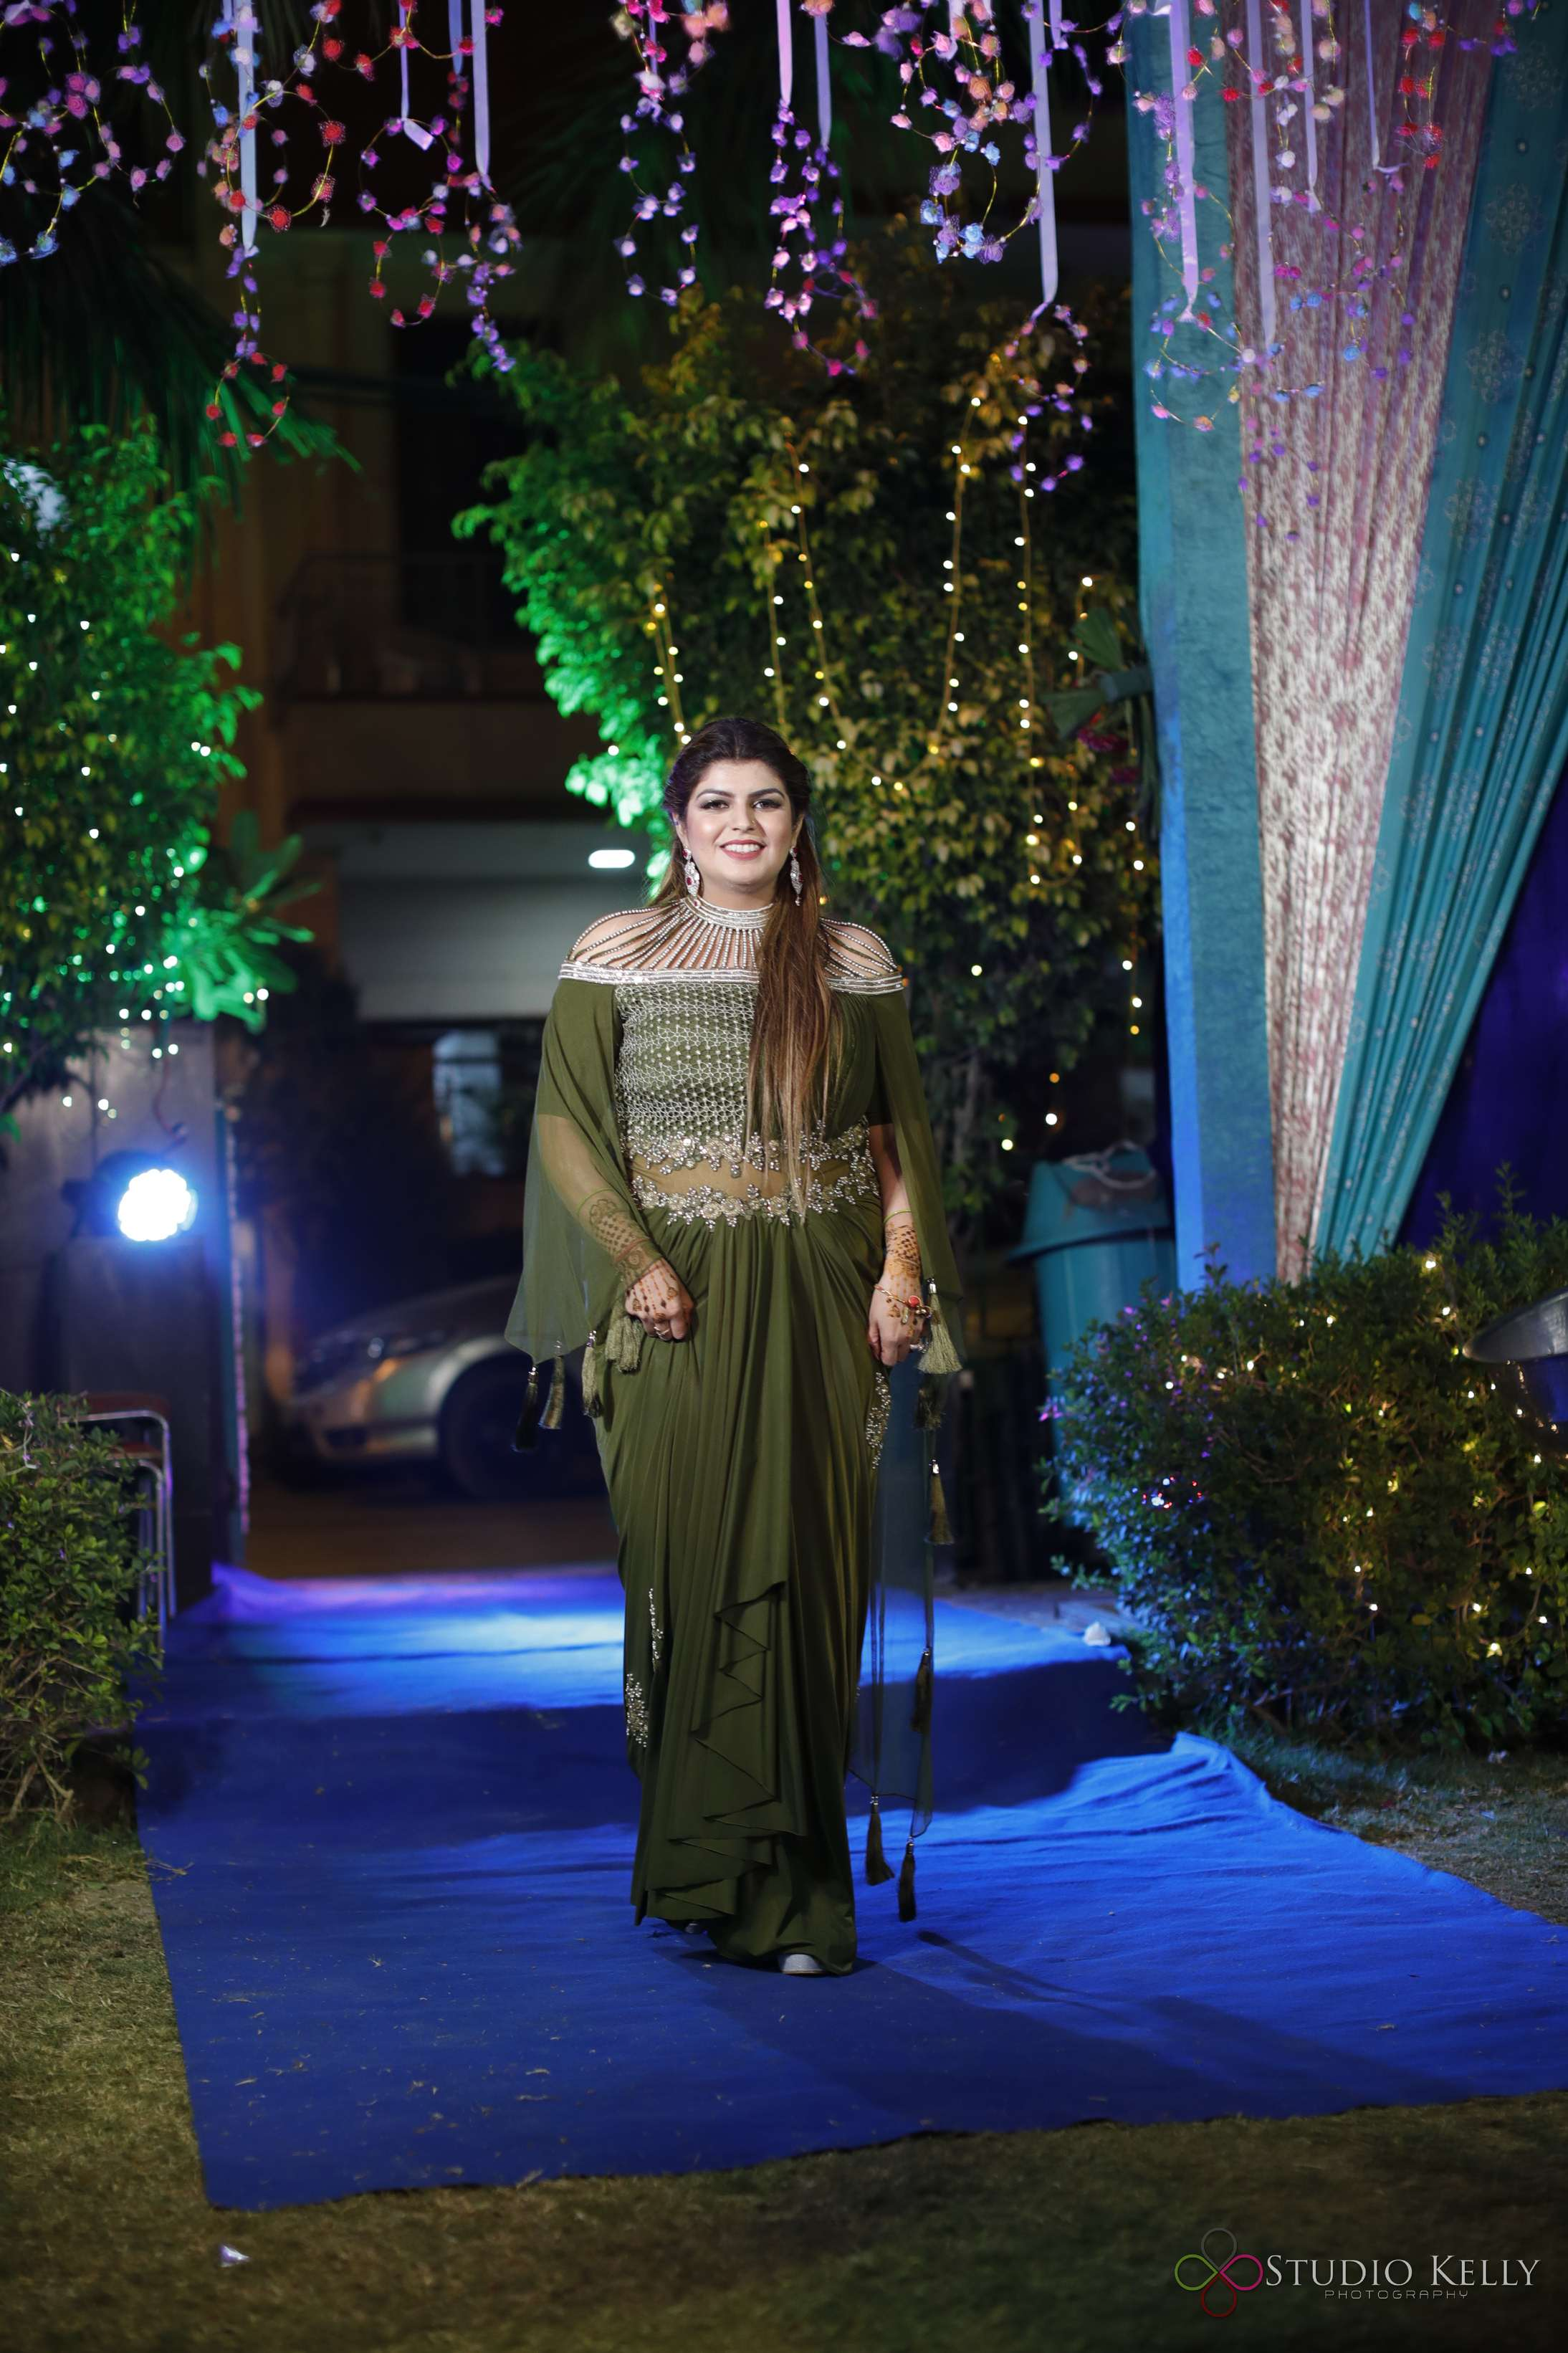 bridal entrance ideas |indian cocktail party pictures | indian wedding pictures | olive green bridal gown | indian bridal indo-western | green bridal gown | beautiful Indian bridal gown | fun party pictures | indian cocktail party ideas | function mania